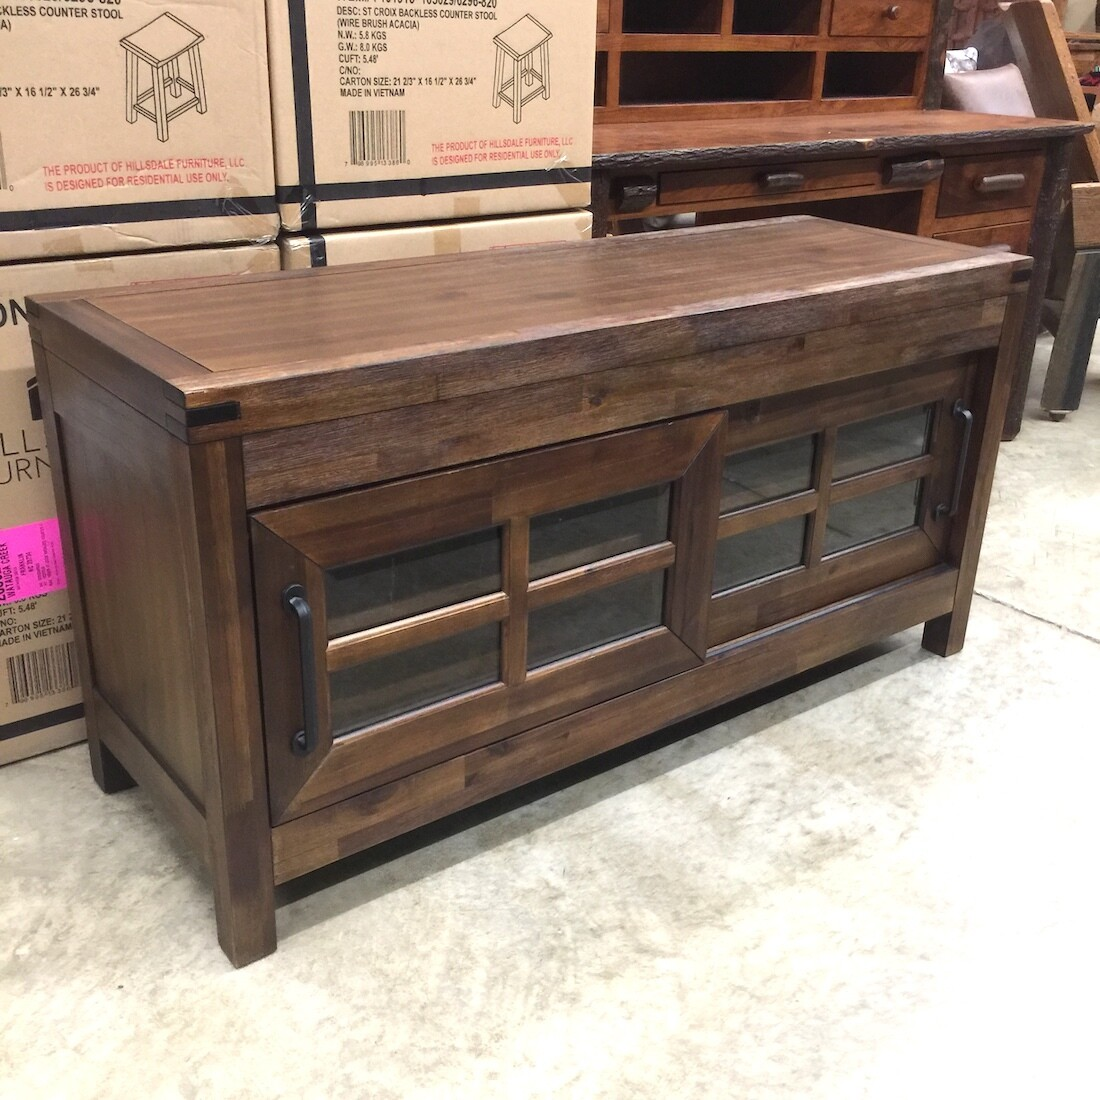 St Croix TV Console with 2 Doors